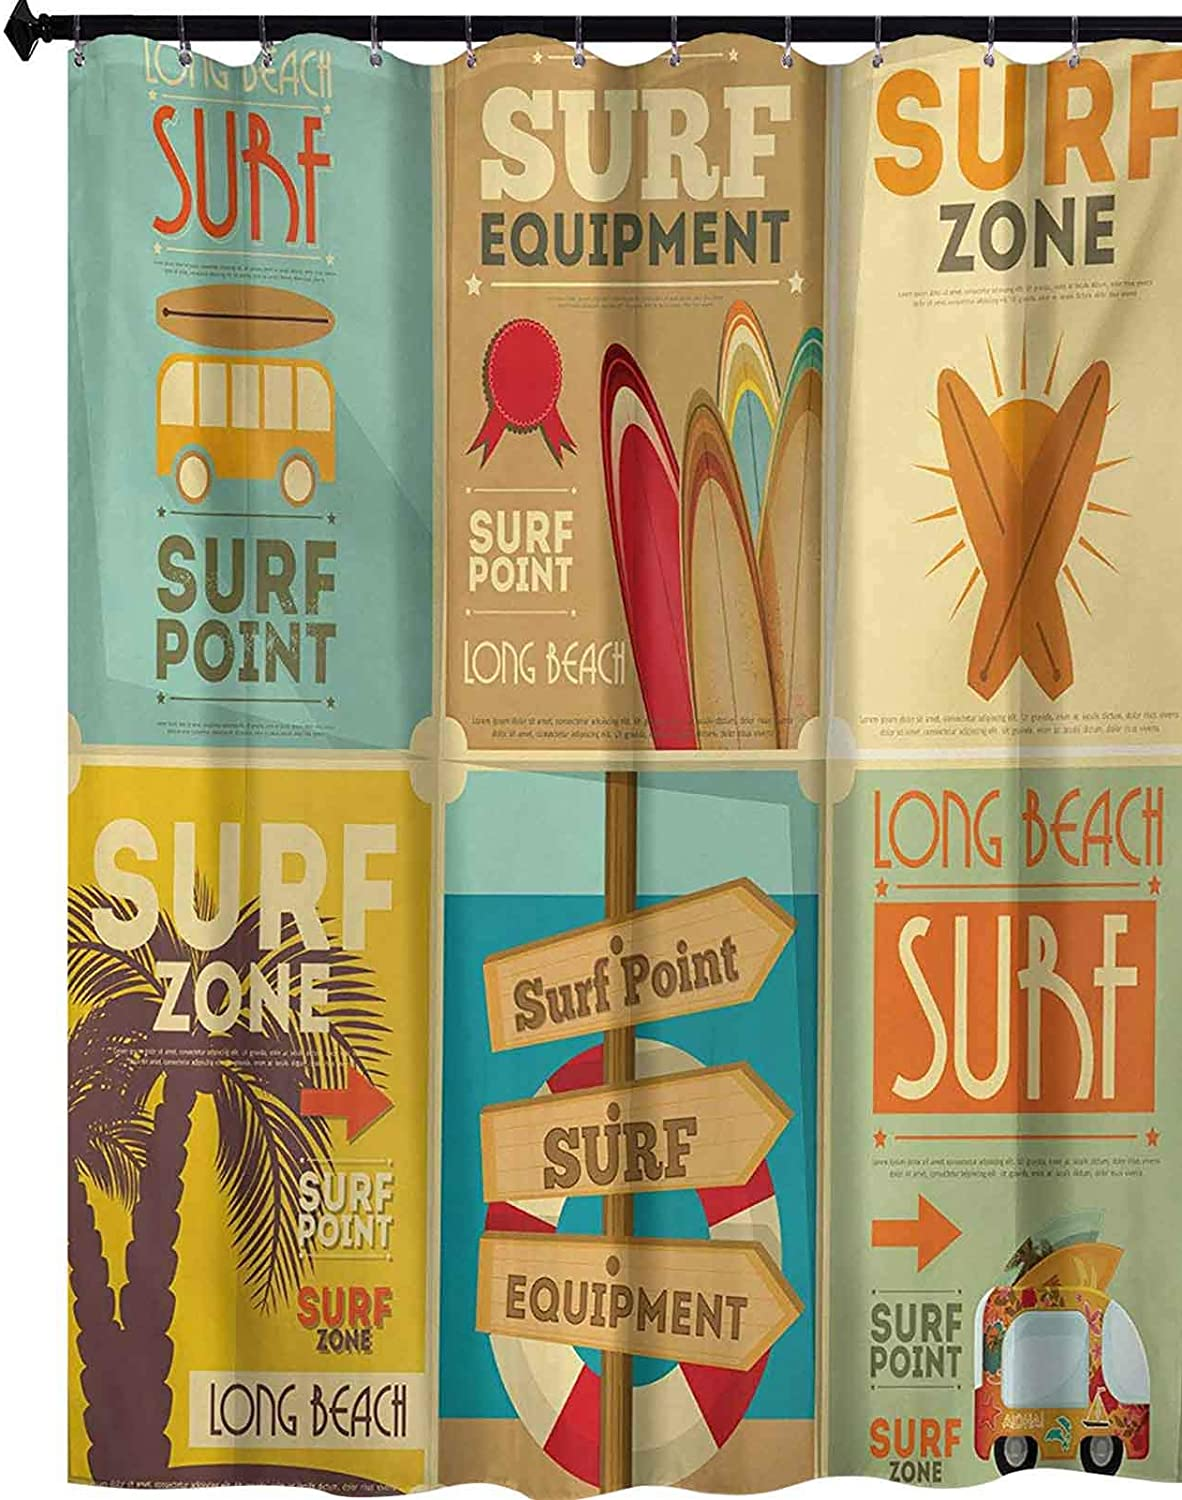 """YUAZHOQI Shower Curtains Set with Hooks, Retro Posters Collection Summer Vacation Theme Hobby Water Sports California Beach, Bathroom Curtain Polyester Home Decor 72"""" x 78"""", Multicolor"""